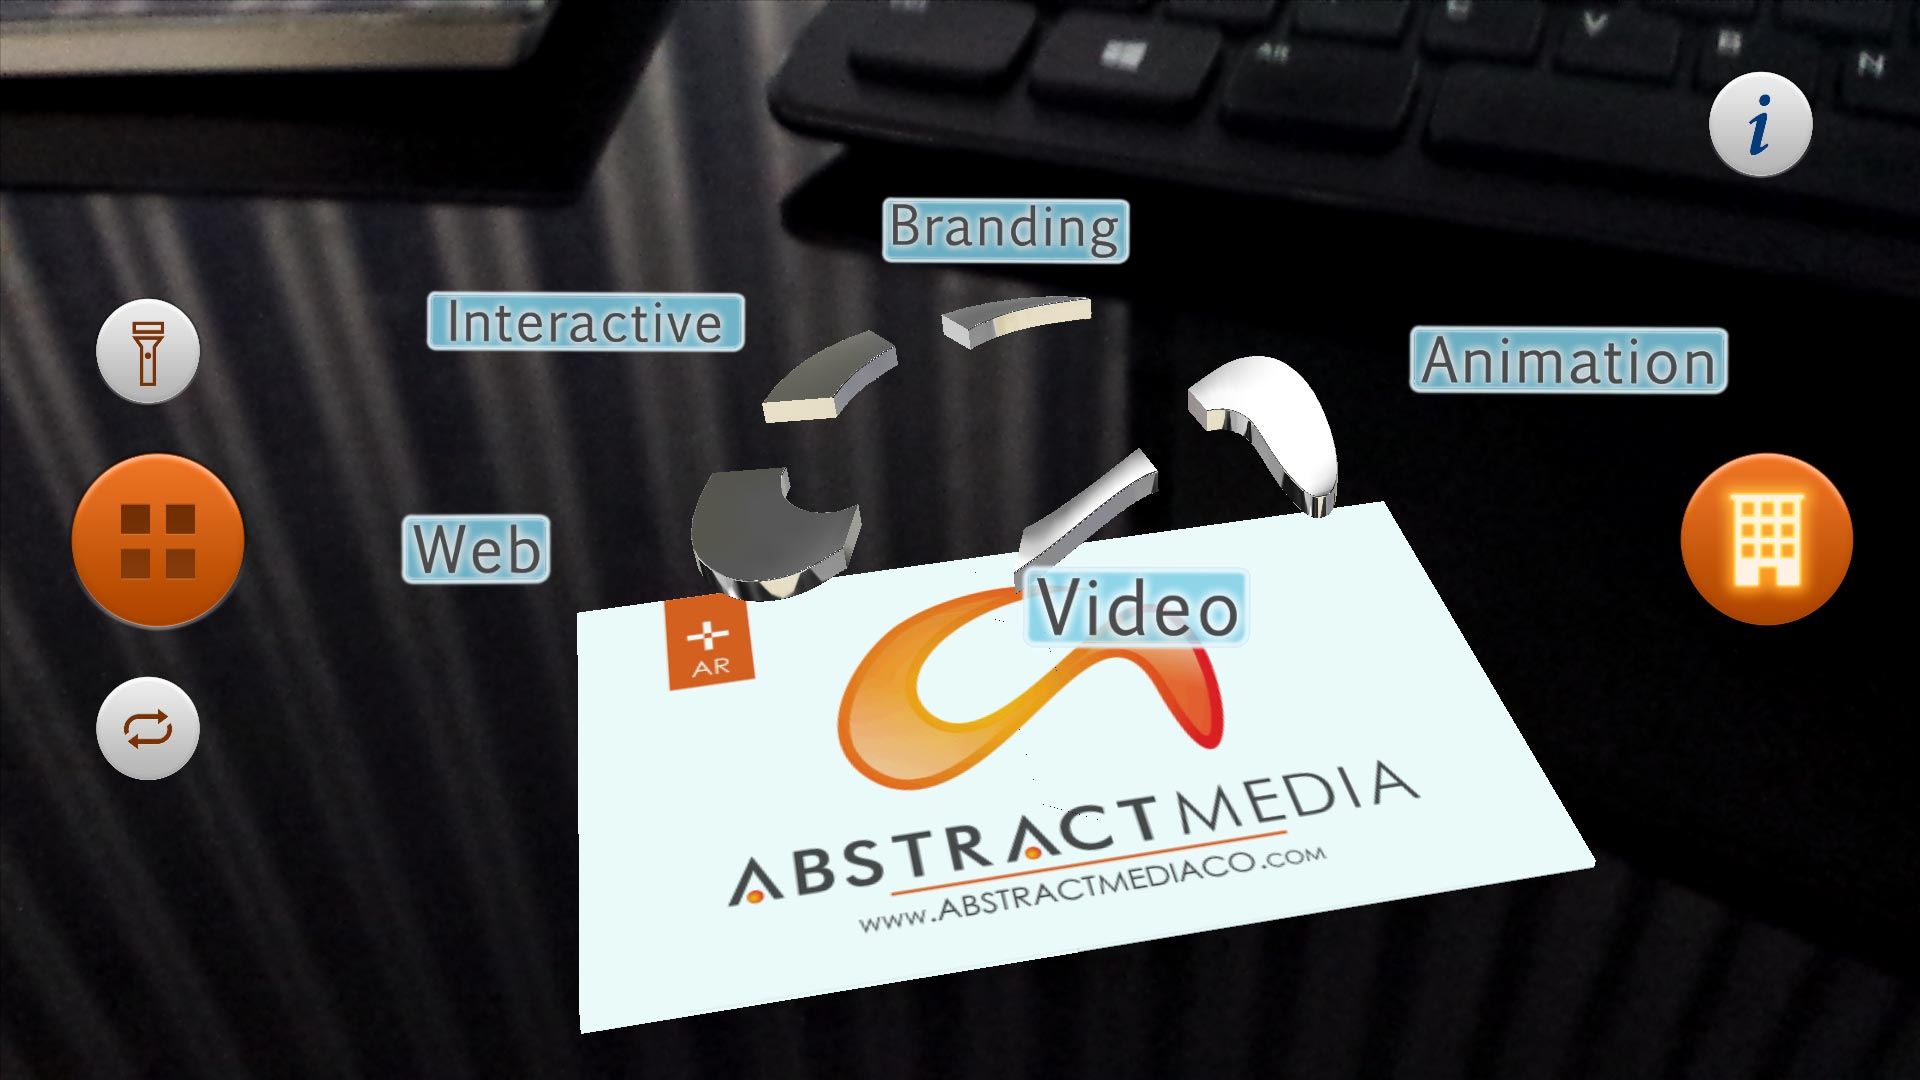 abstract-media-business-card-screenshot-2.jpg